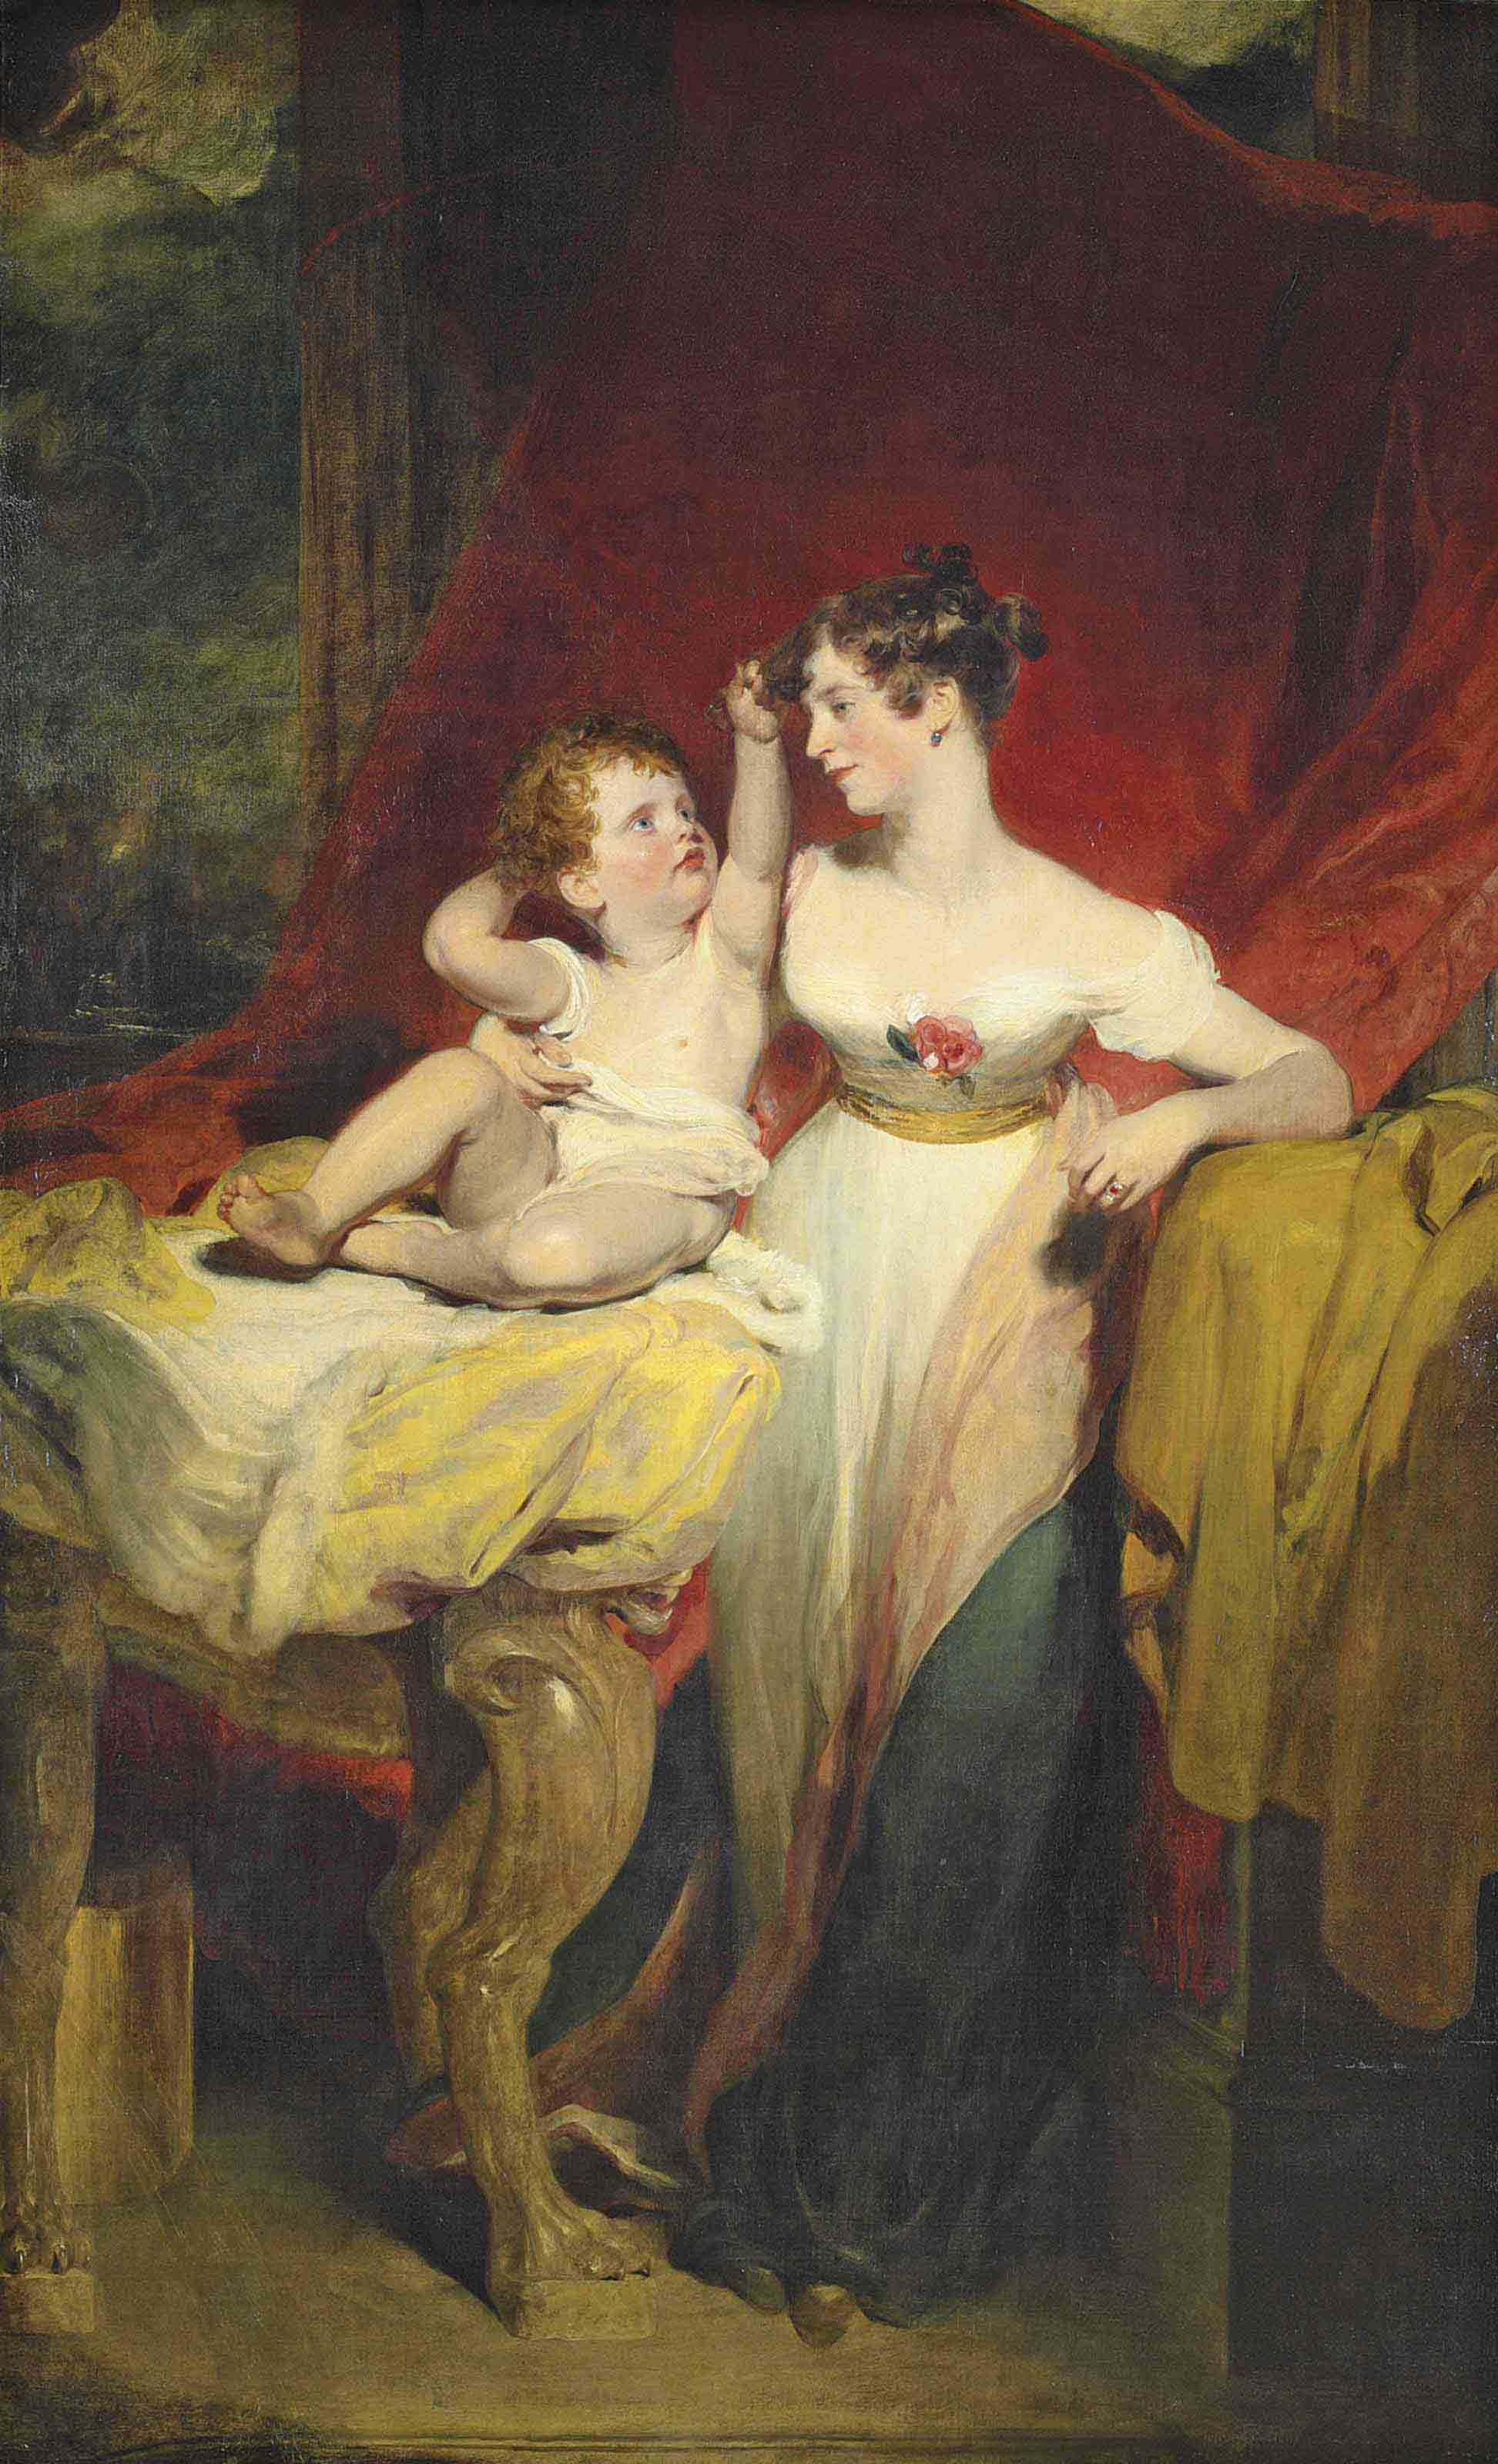 Portrait of Anne, Viscountess Pollington, later Countess of Mexborough (d. 1870), with her son, John Charles (1810-99), later 4th Earl of Mexborough, full-length, she in a white dress with a rose at the bodice, with a pink and blue shawl, a draped red curtain beyond